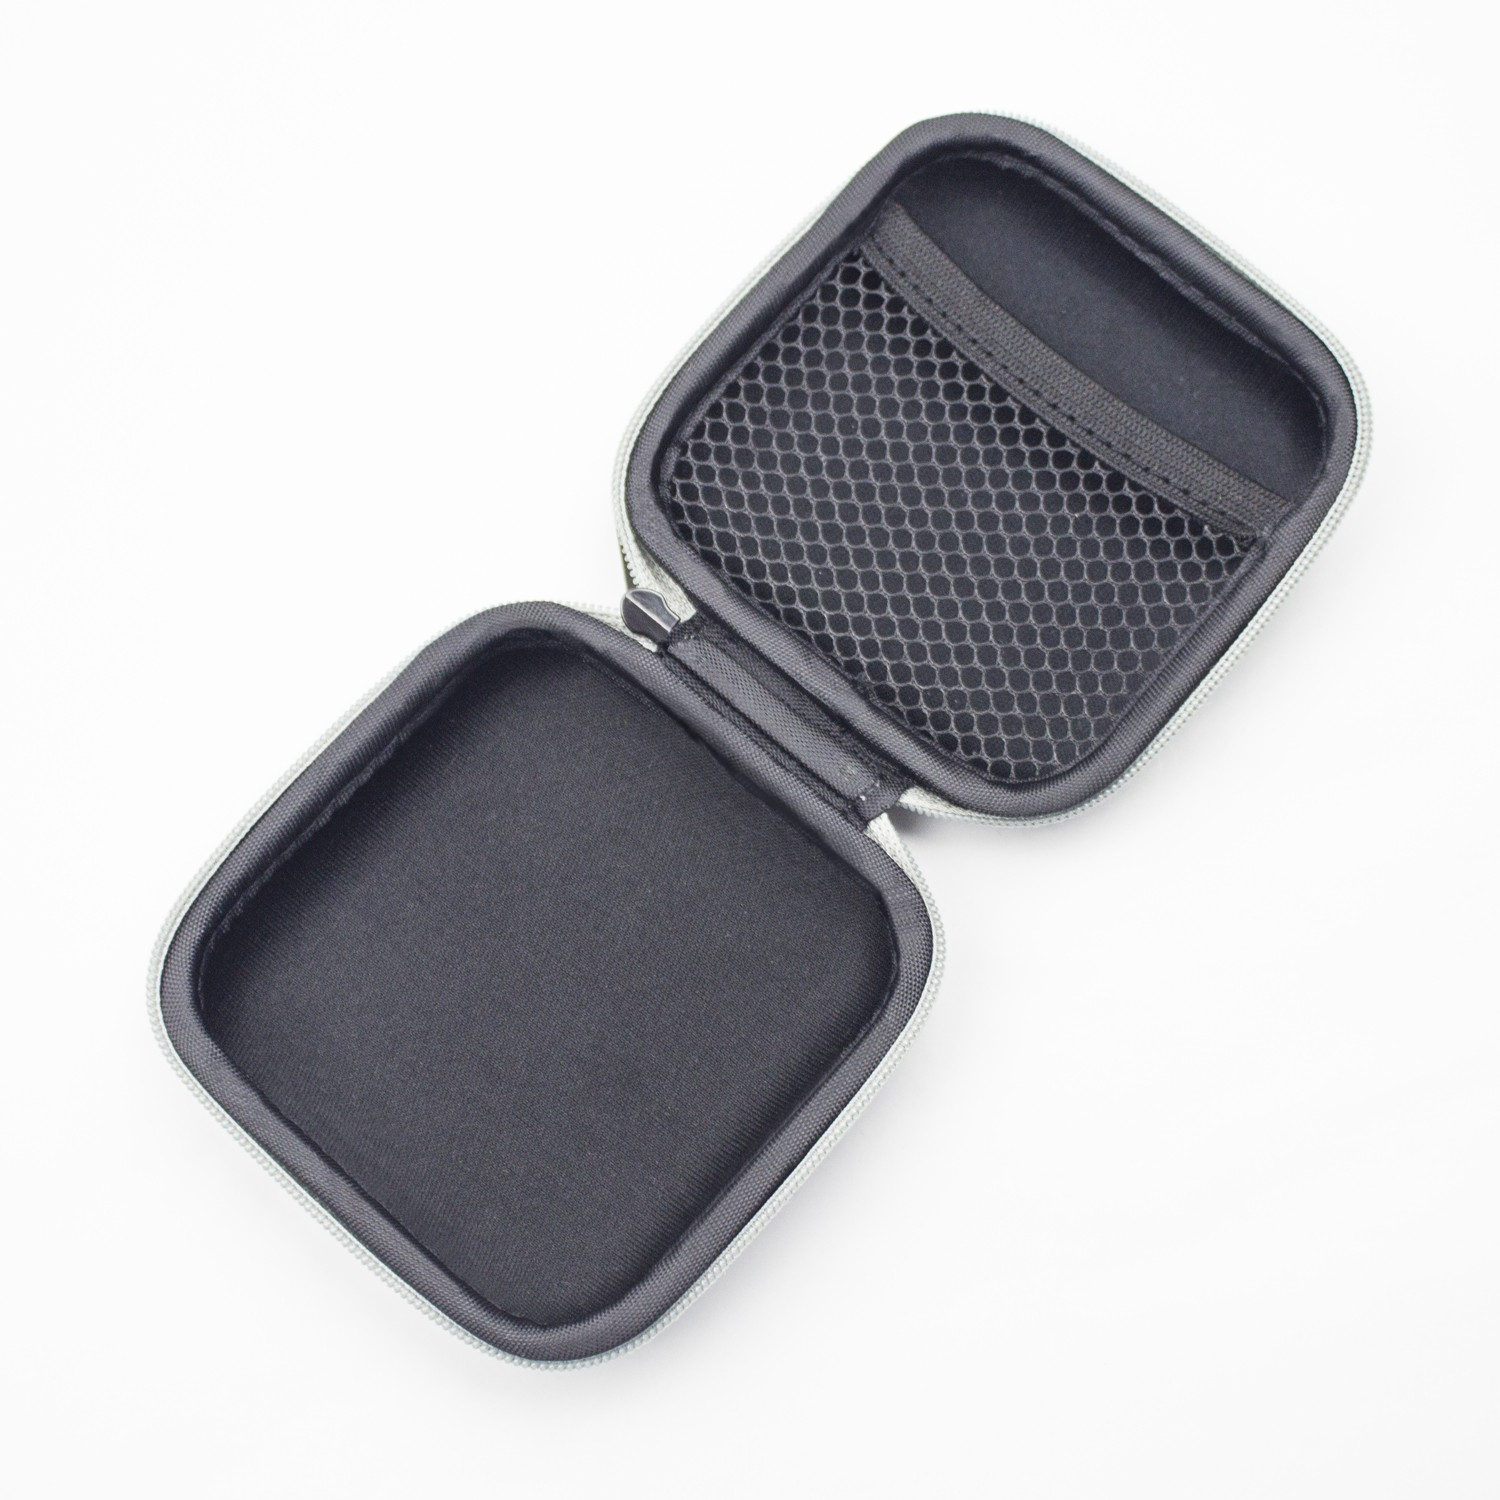 RevoNext earphone pouch best supplier bulk buy-4